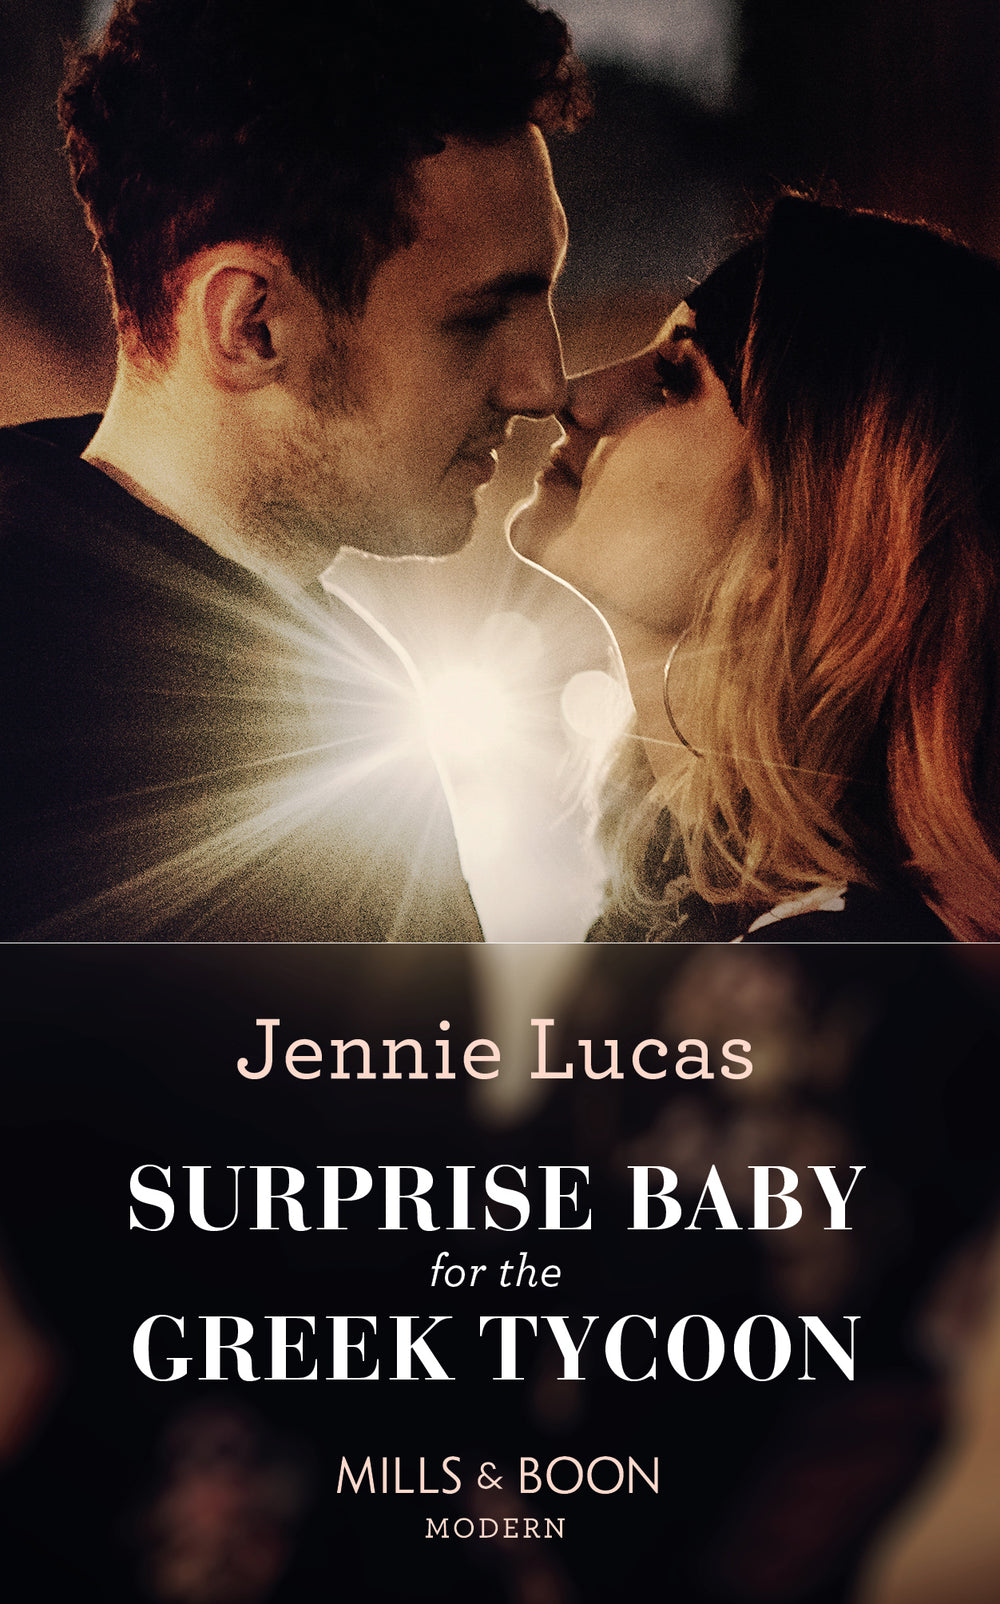 Surprise Baby for the Greek Tycoon - Chapter 11